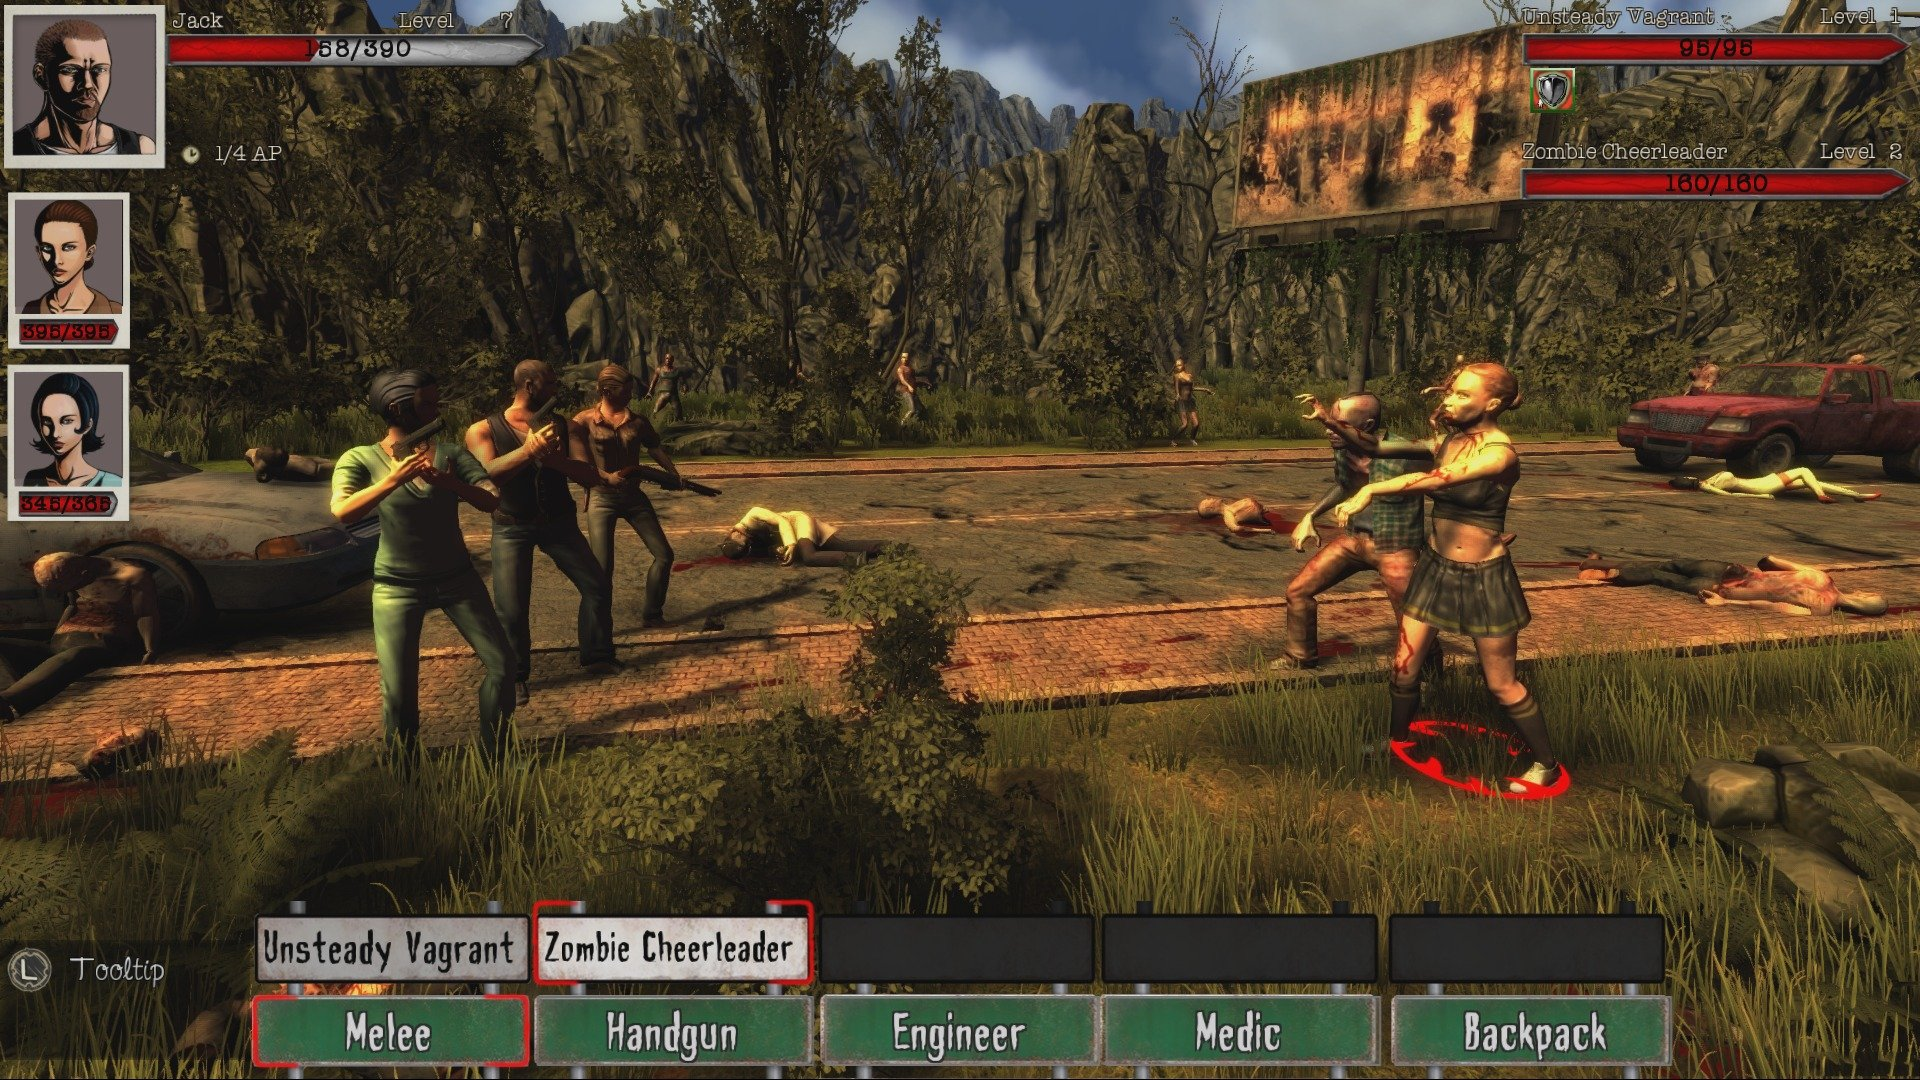 Tactical Zombie Horror RPG 'Dead Age' Now on Xbox One | Horror Geek Life